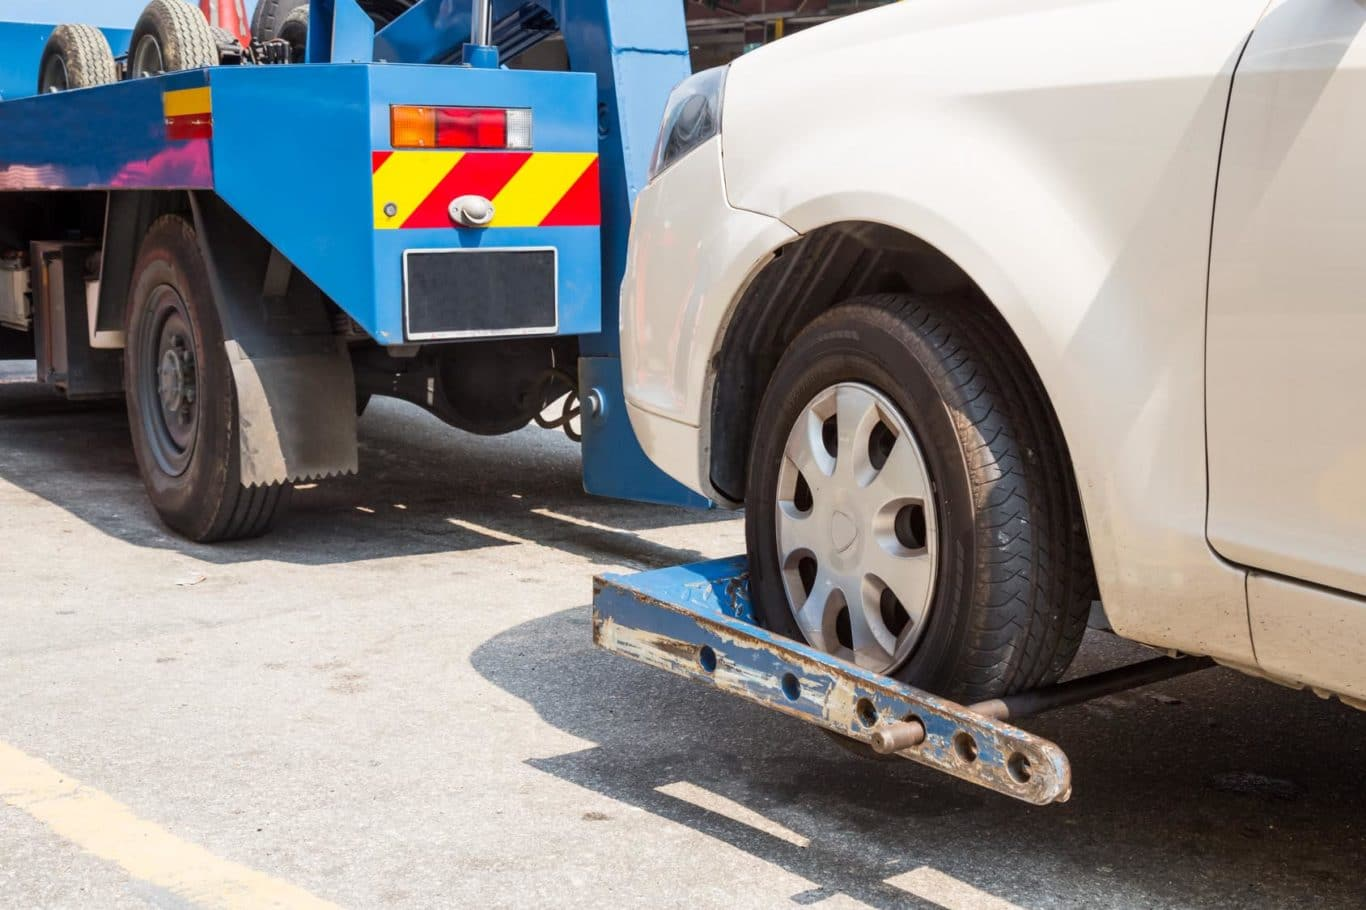 Chapelizod expert Breakdown Assistance services